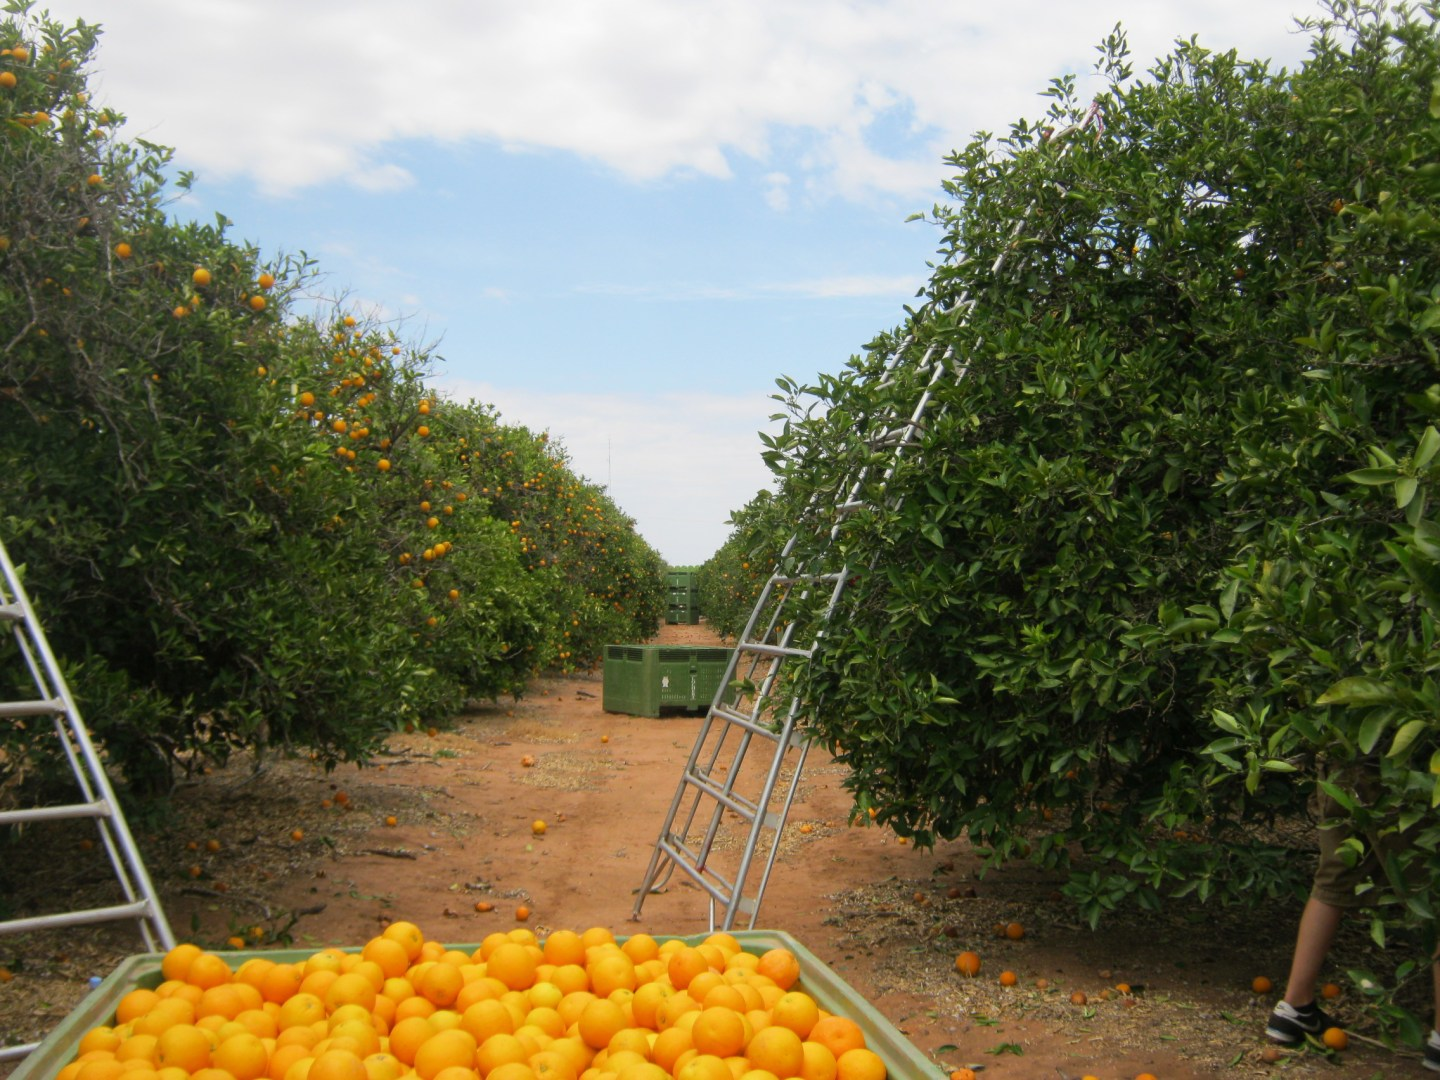 The First Week of Orange Picking